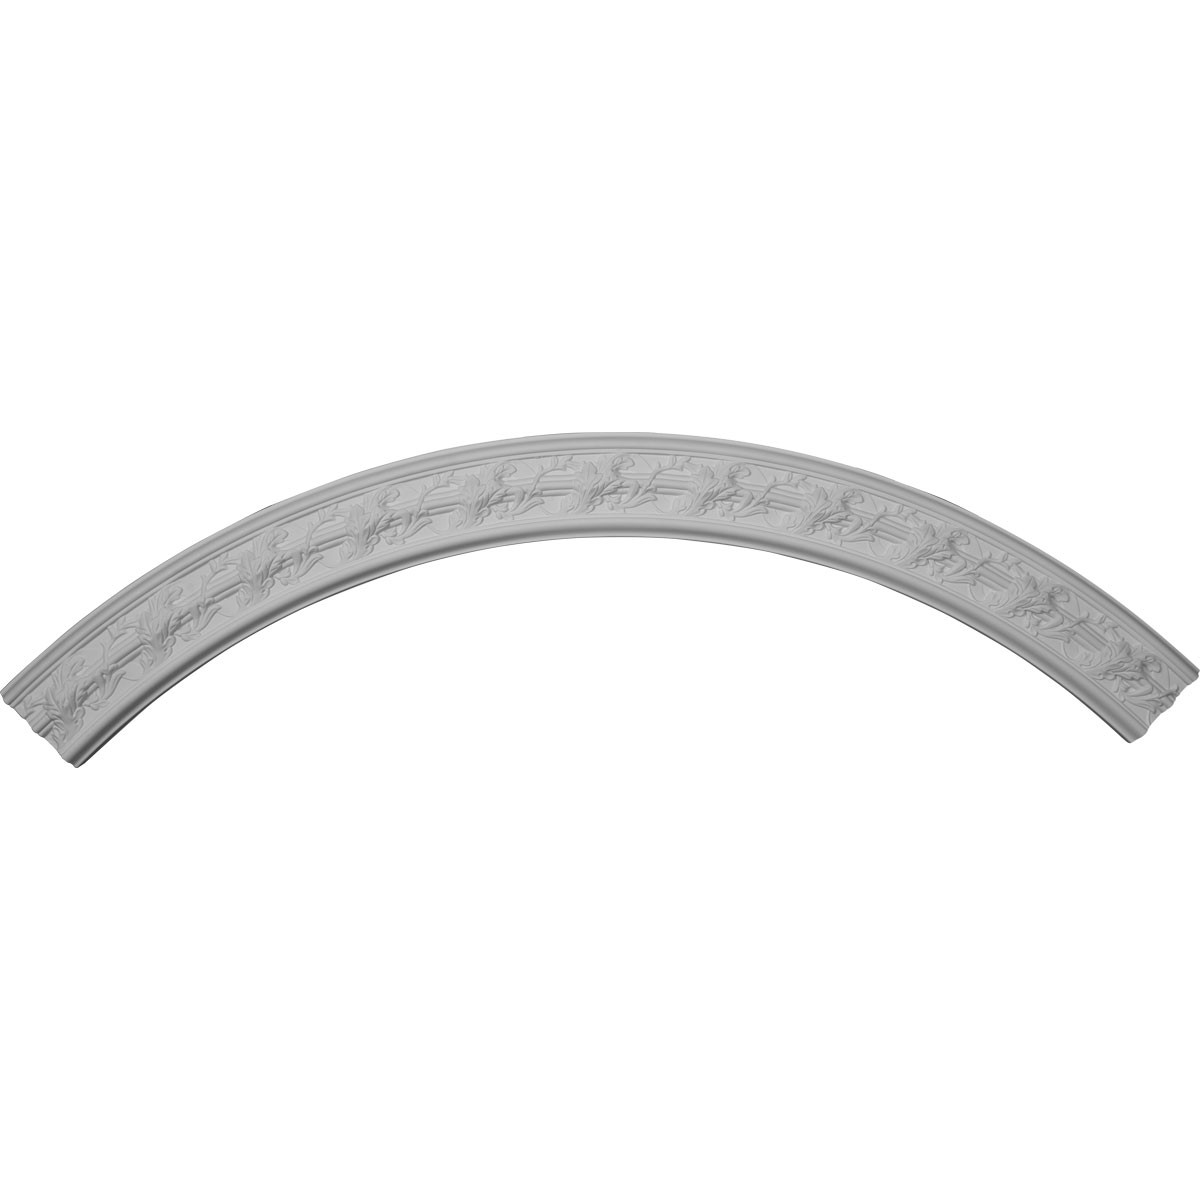 """EM-CR67TR - 67 3/8""""OD x 58 5/8""""ID x 7/8""""P Tristan Ceiling Ring (1/4 of complete circle)"""